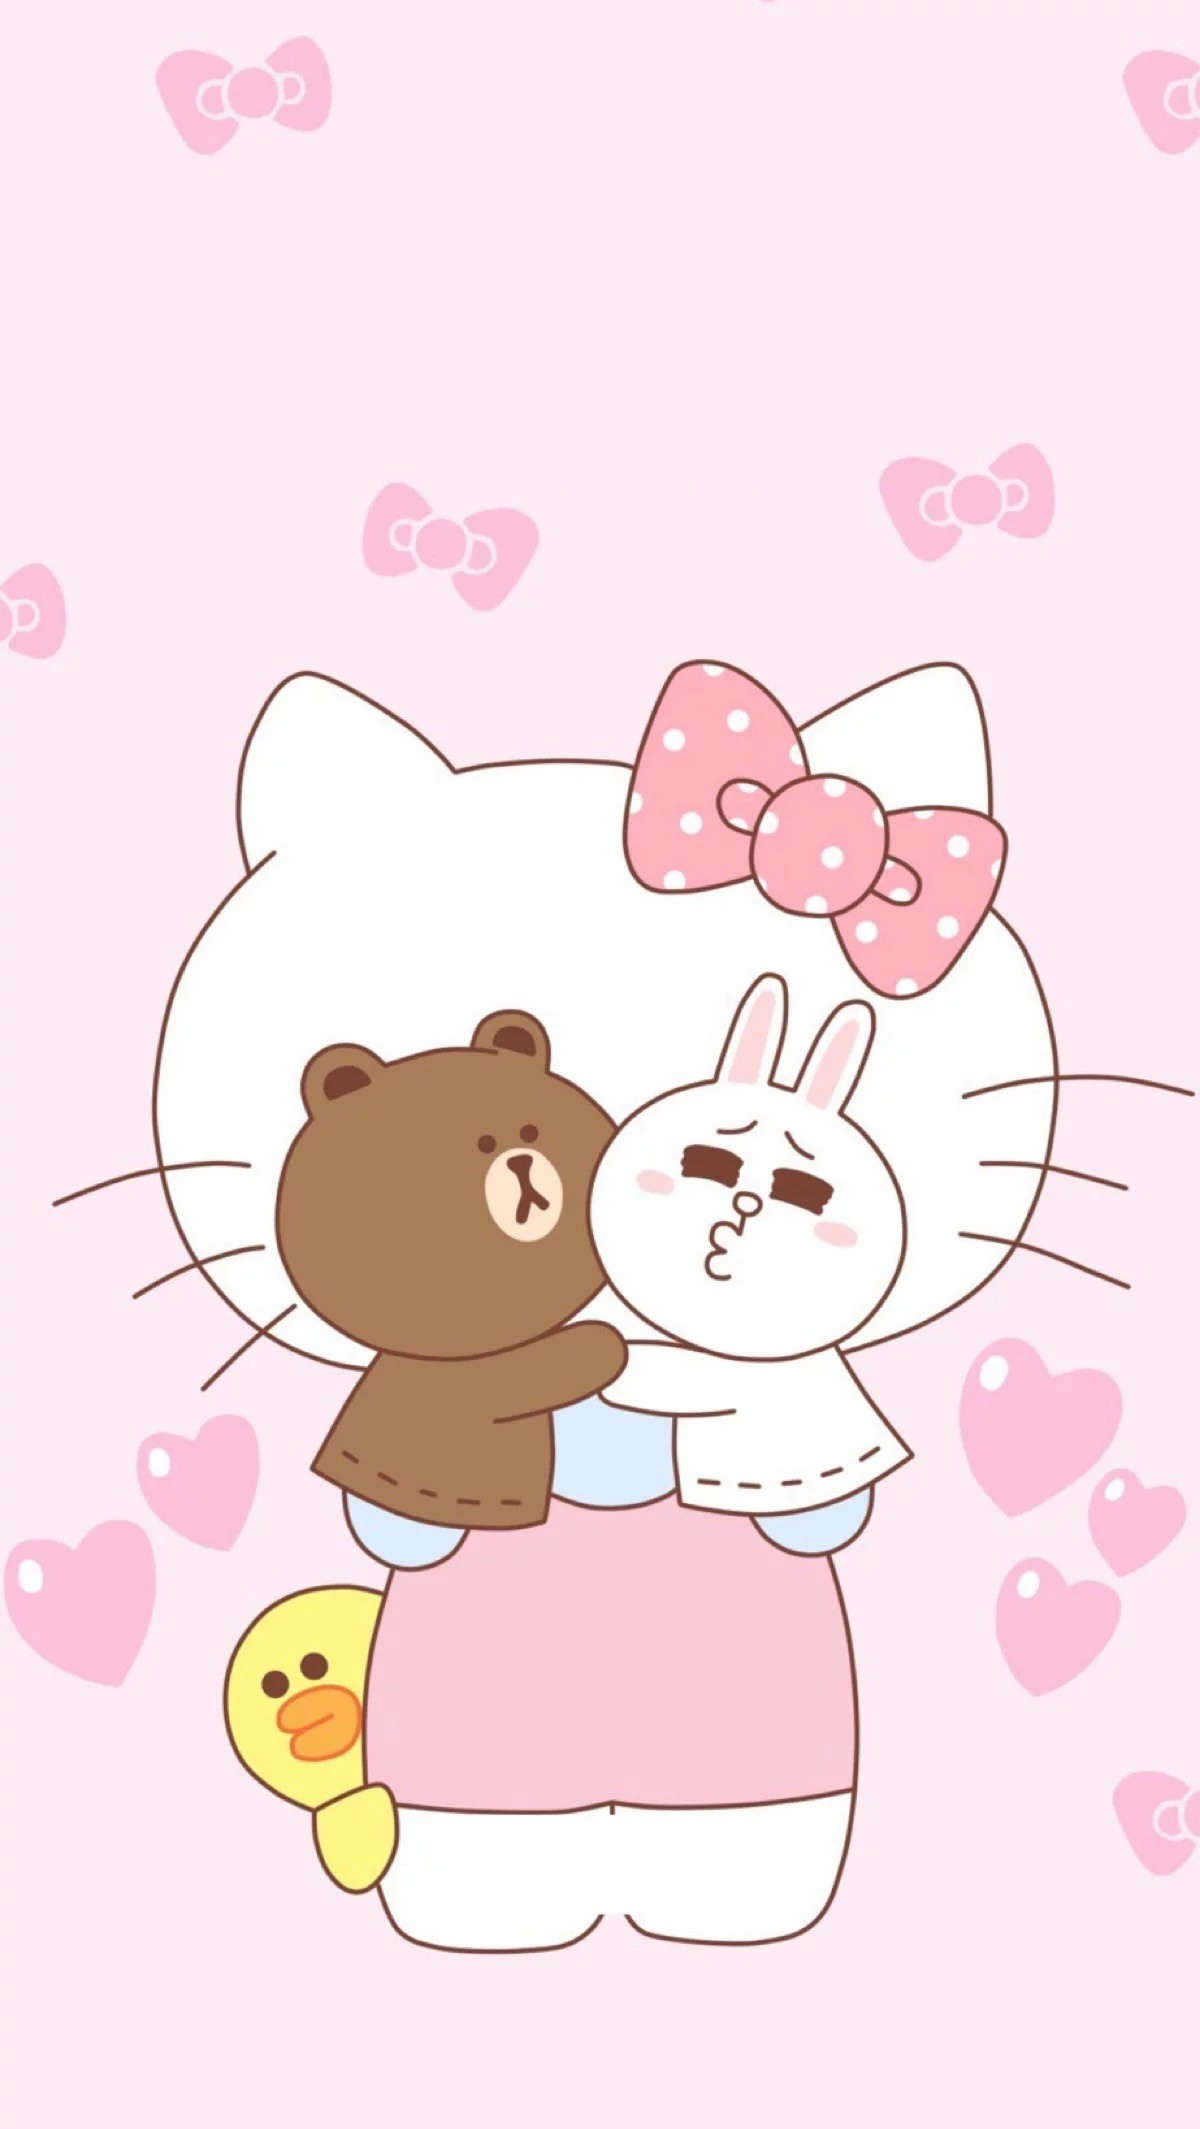 Beautiful Wallpaper Hello Kitty Friend - 1043801-hello-kitty-and-friends-wallpaper-1200x2129-1080p  HD_198343.jpg